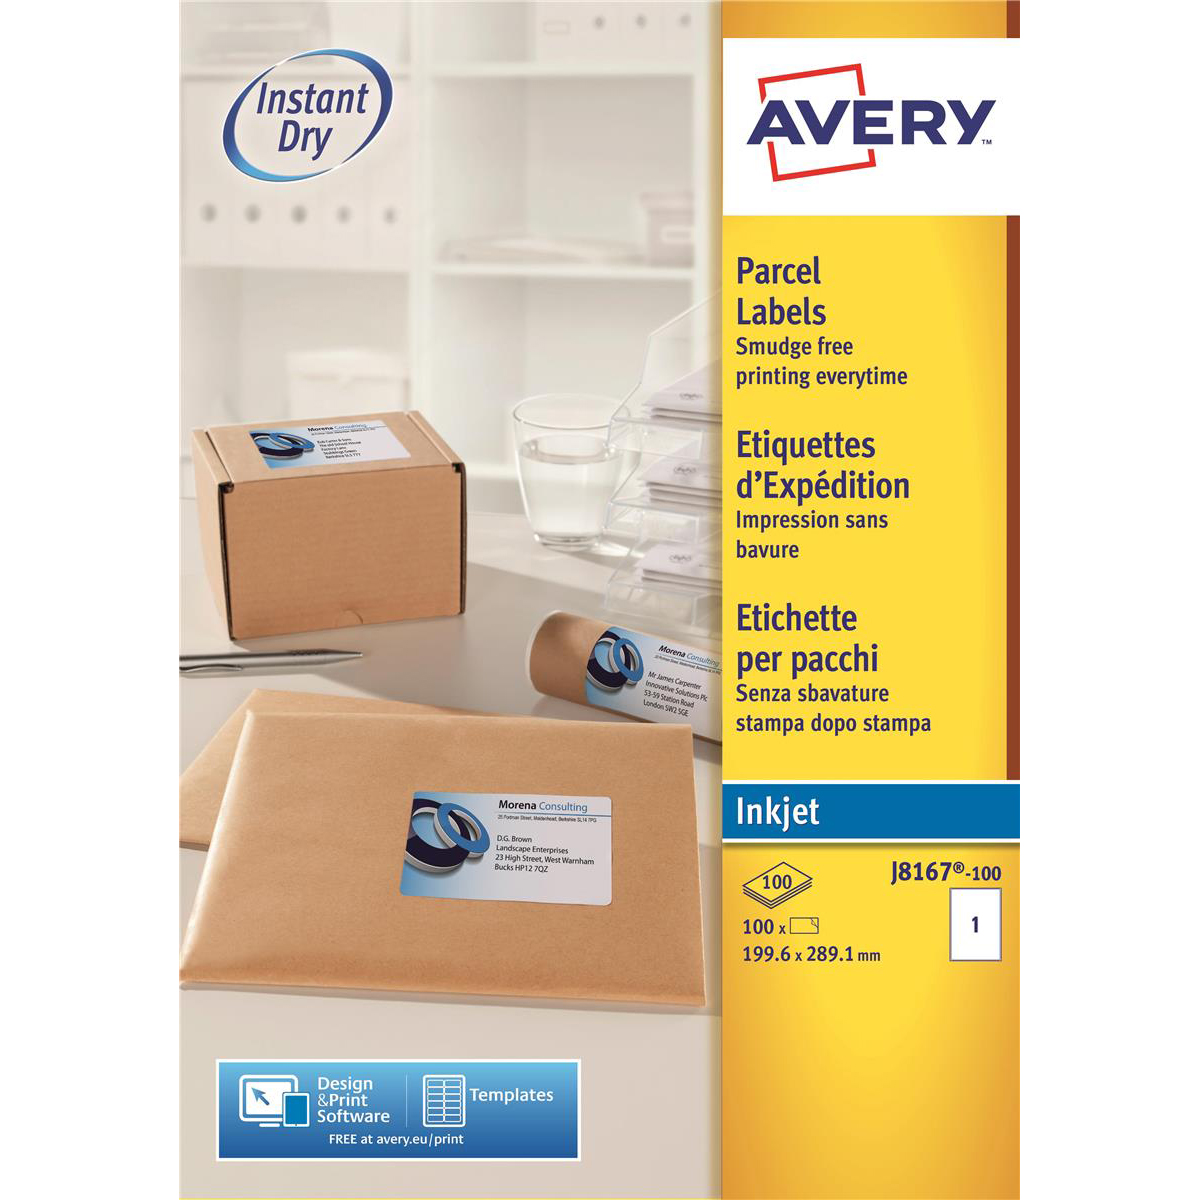 Avery Quick DRY Parcel Labels Inkjet 1 per Sheet 199.6x289.1mm White Ref J8167-100 [100 Labels]